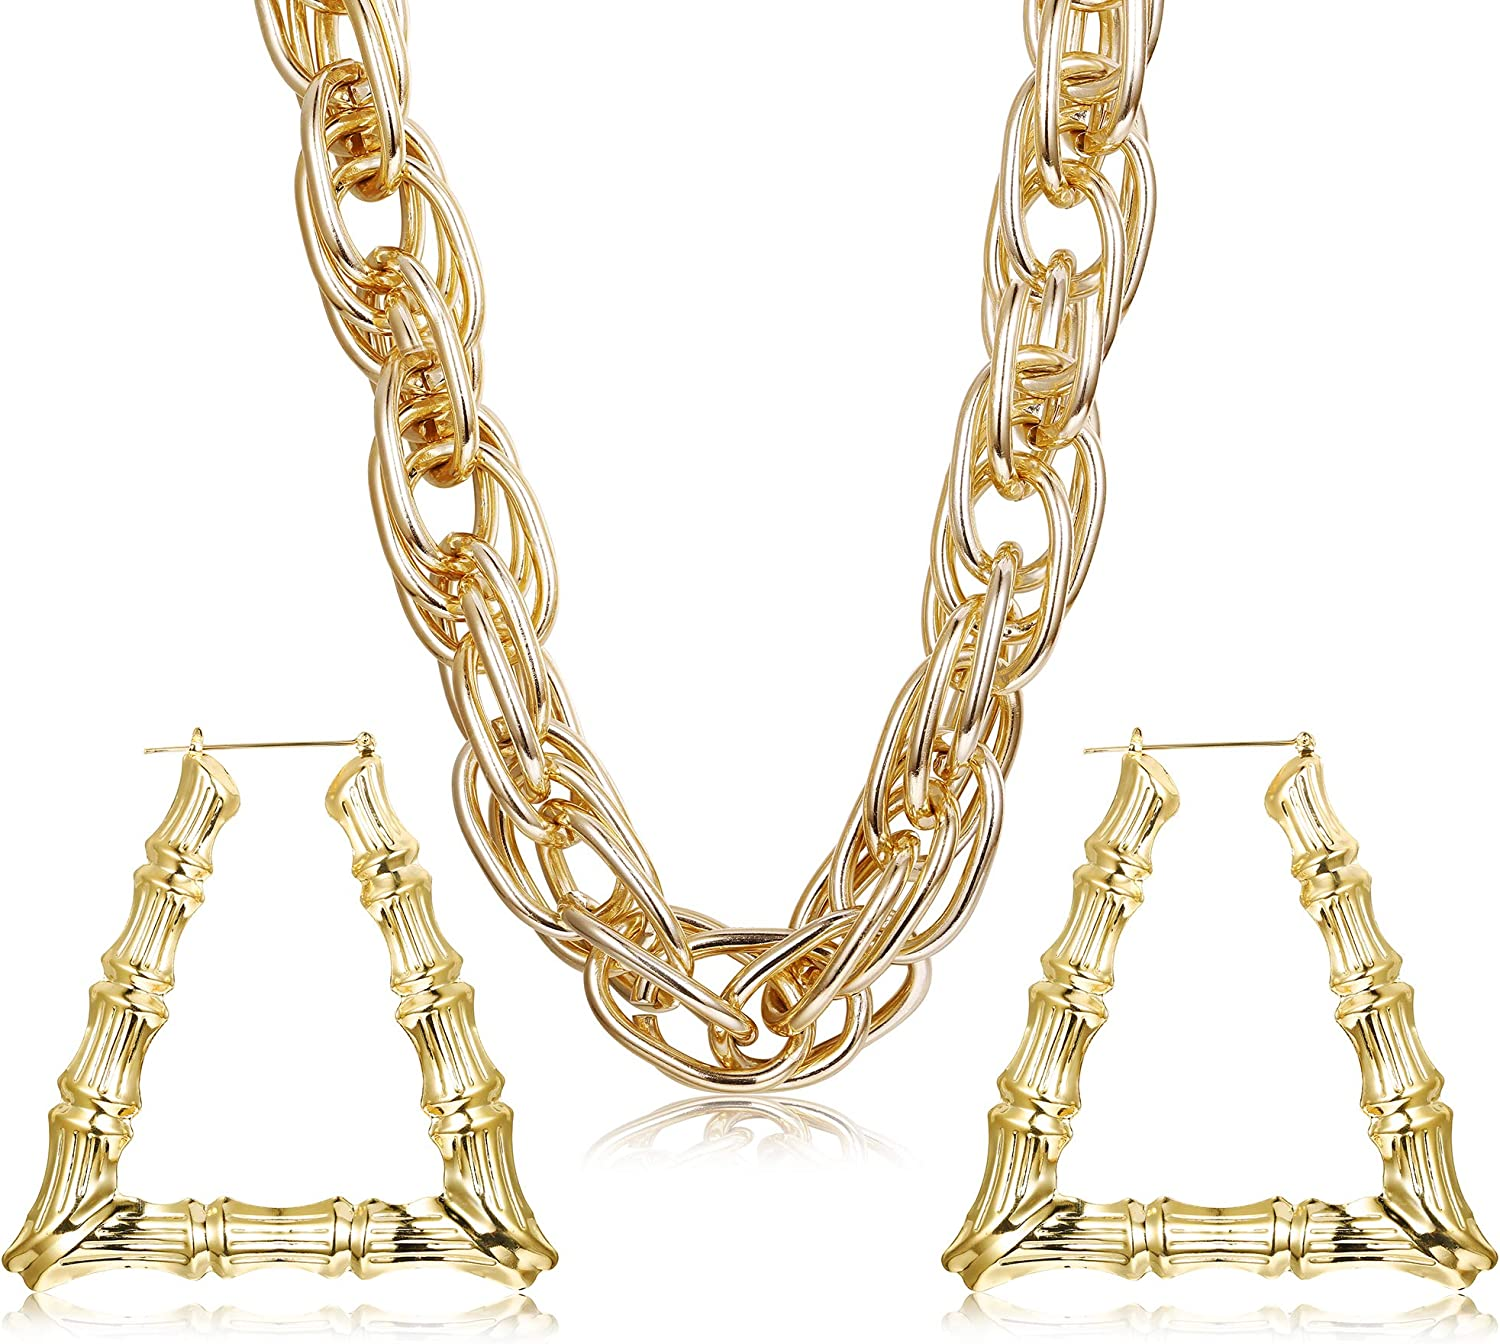 HANPABUM Gold Plated Chunky Rope Chain Necklace and Large Hollow Casting Triangle Bamboo Hoop Earrings Set for Men Women Costume Jewelry Punk Hip Hop Rapper Style